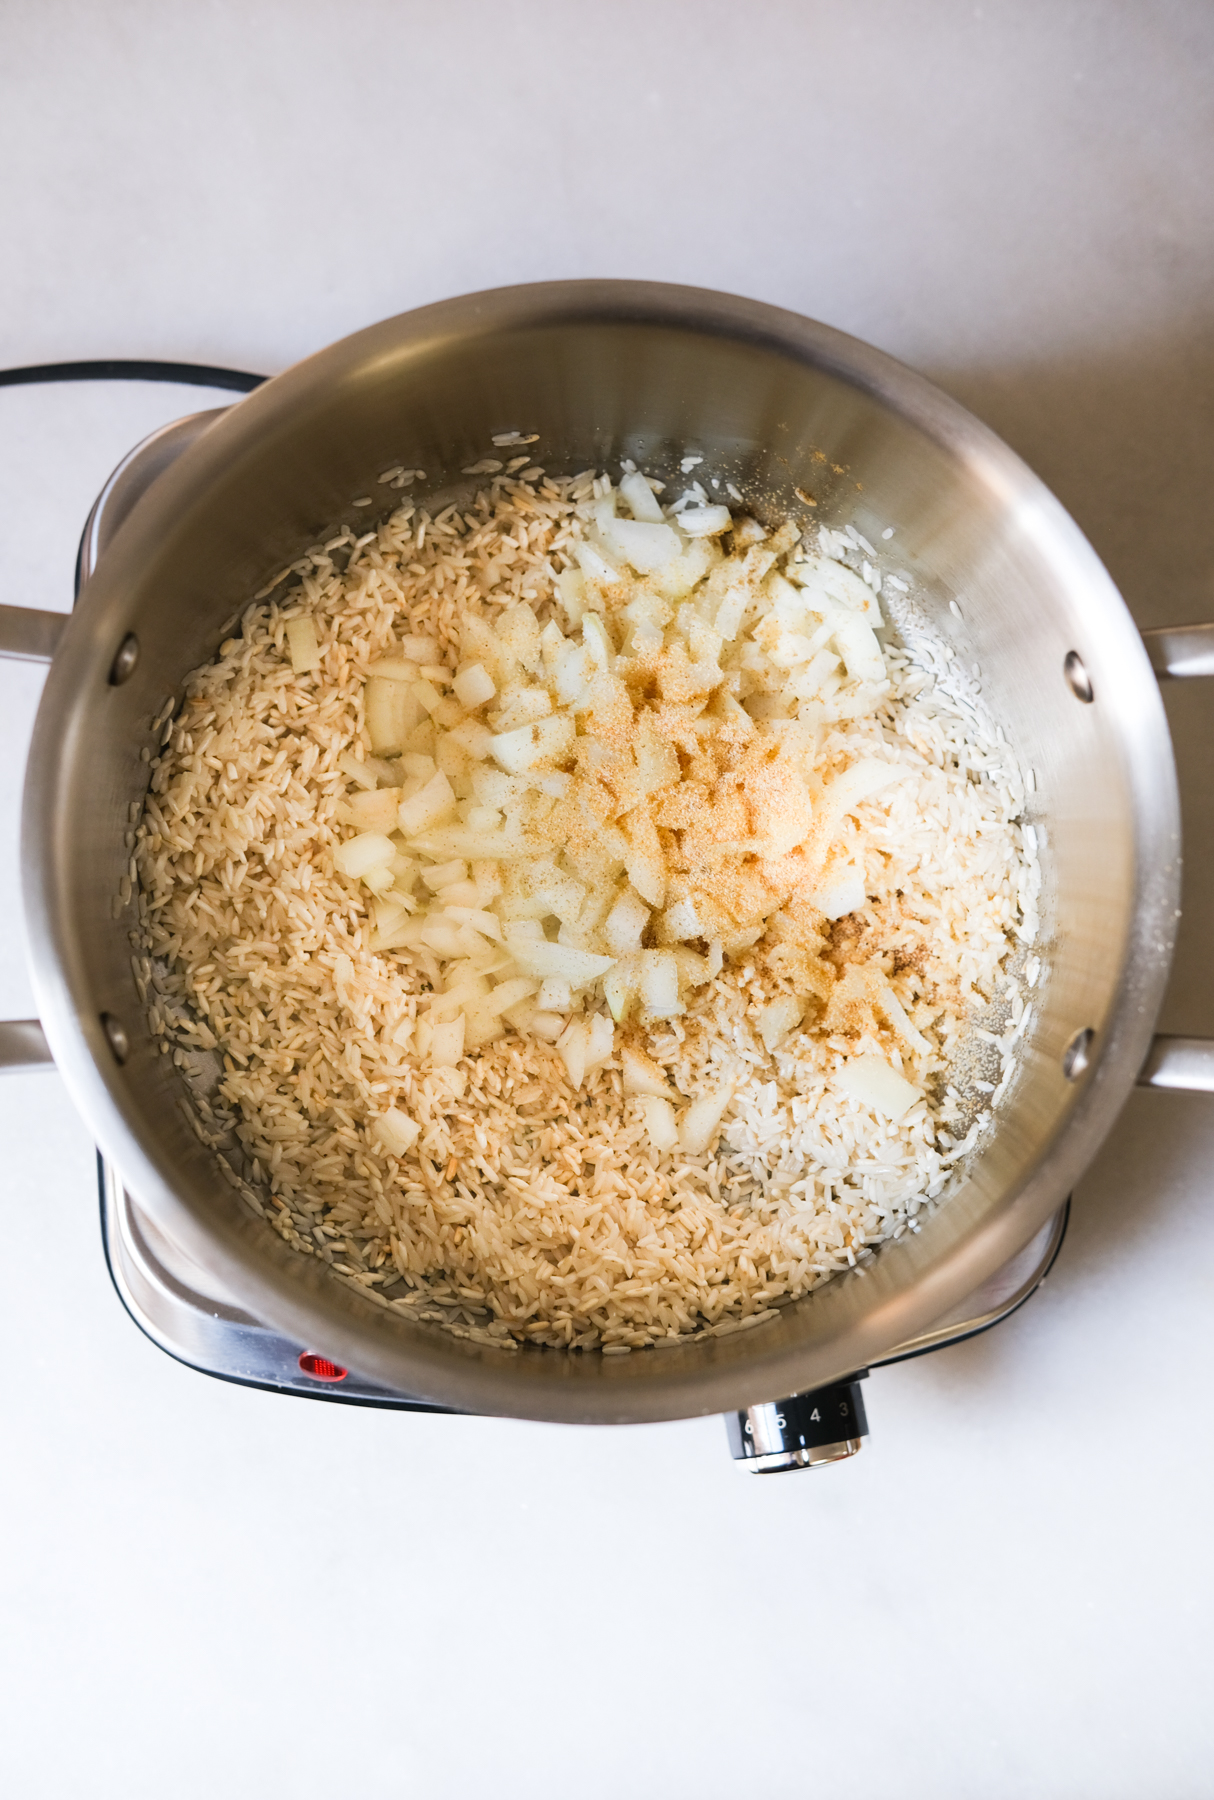 adding in onions and seasoning with pre-cooked rice for Mexican rice